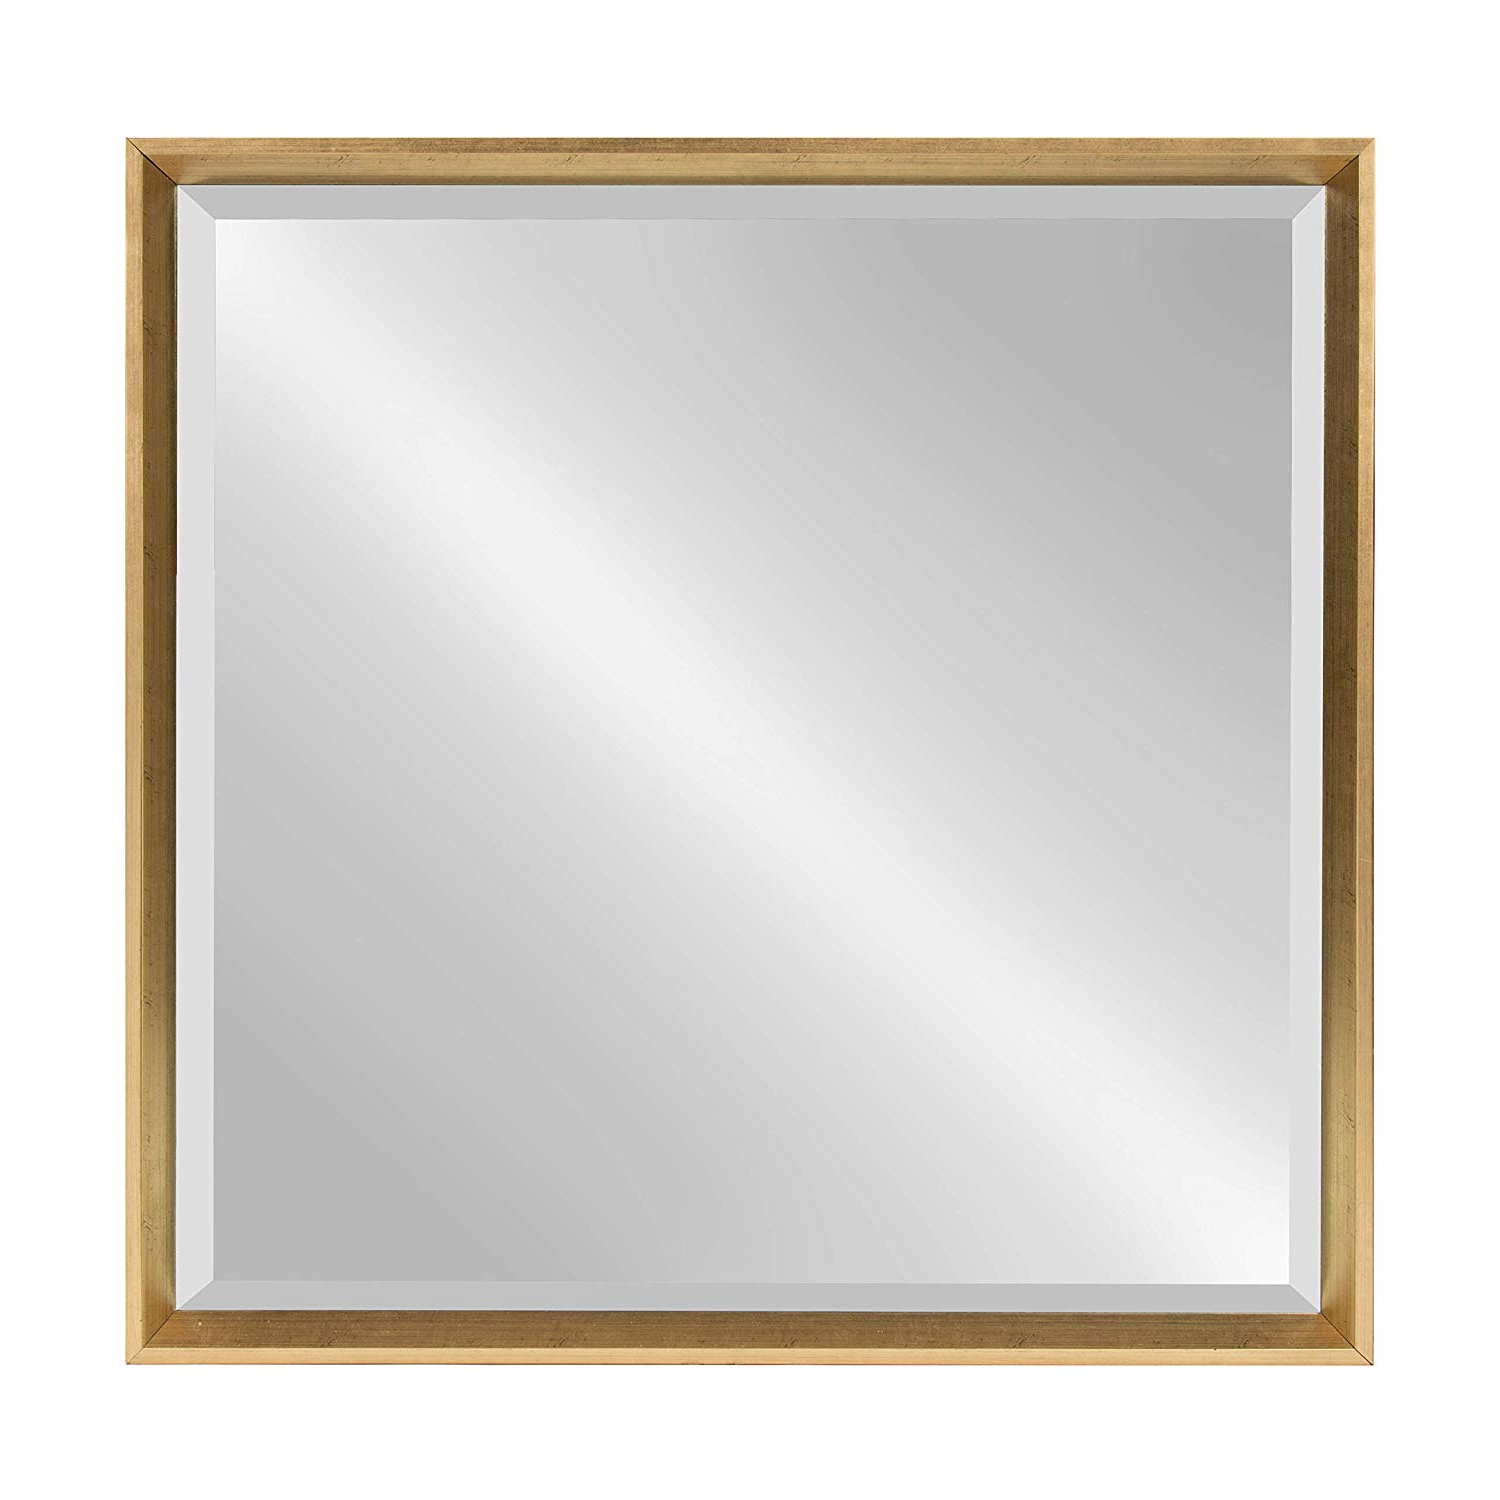 Well Known Kate And Laurel Calter Framed Wall Mirror 28X28 Gold In Inexpensive Large Wall Mirrors (View 20 of 20)